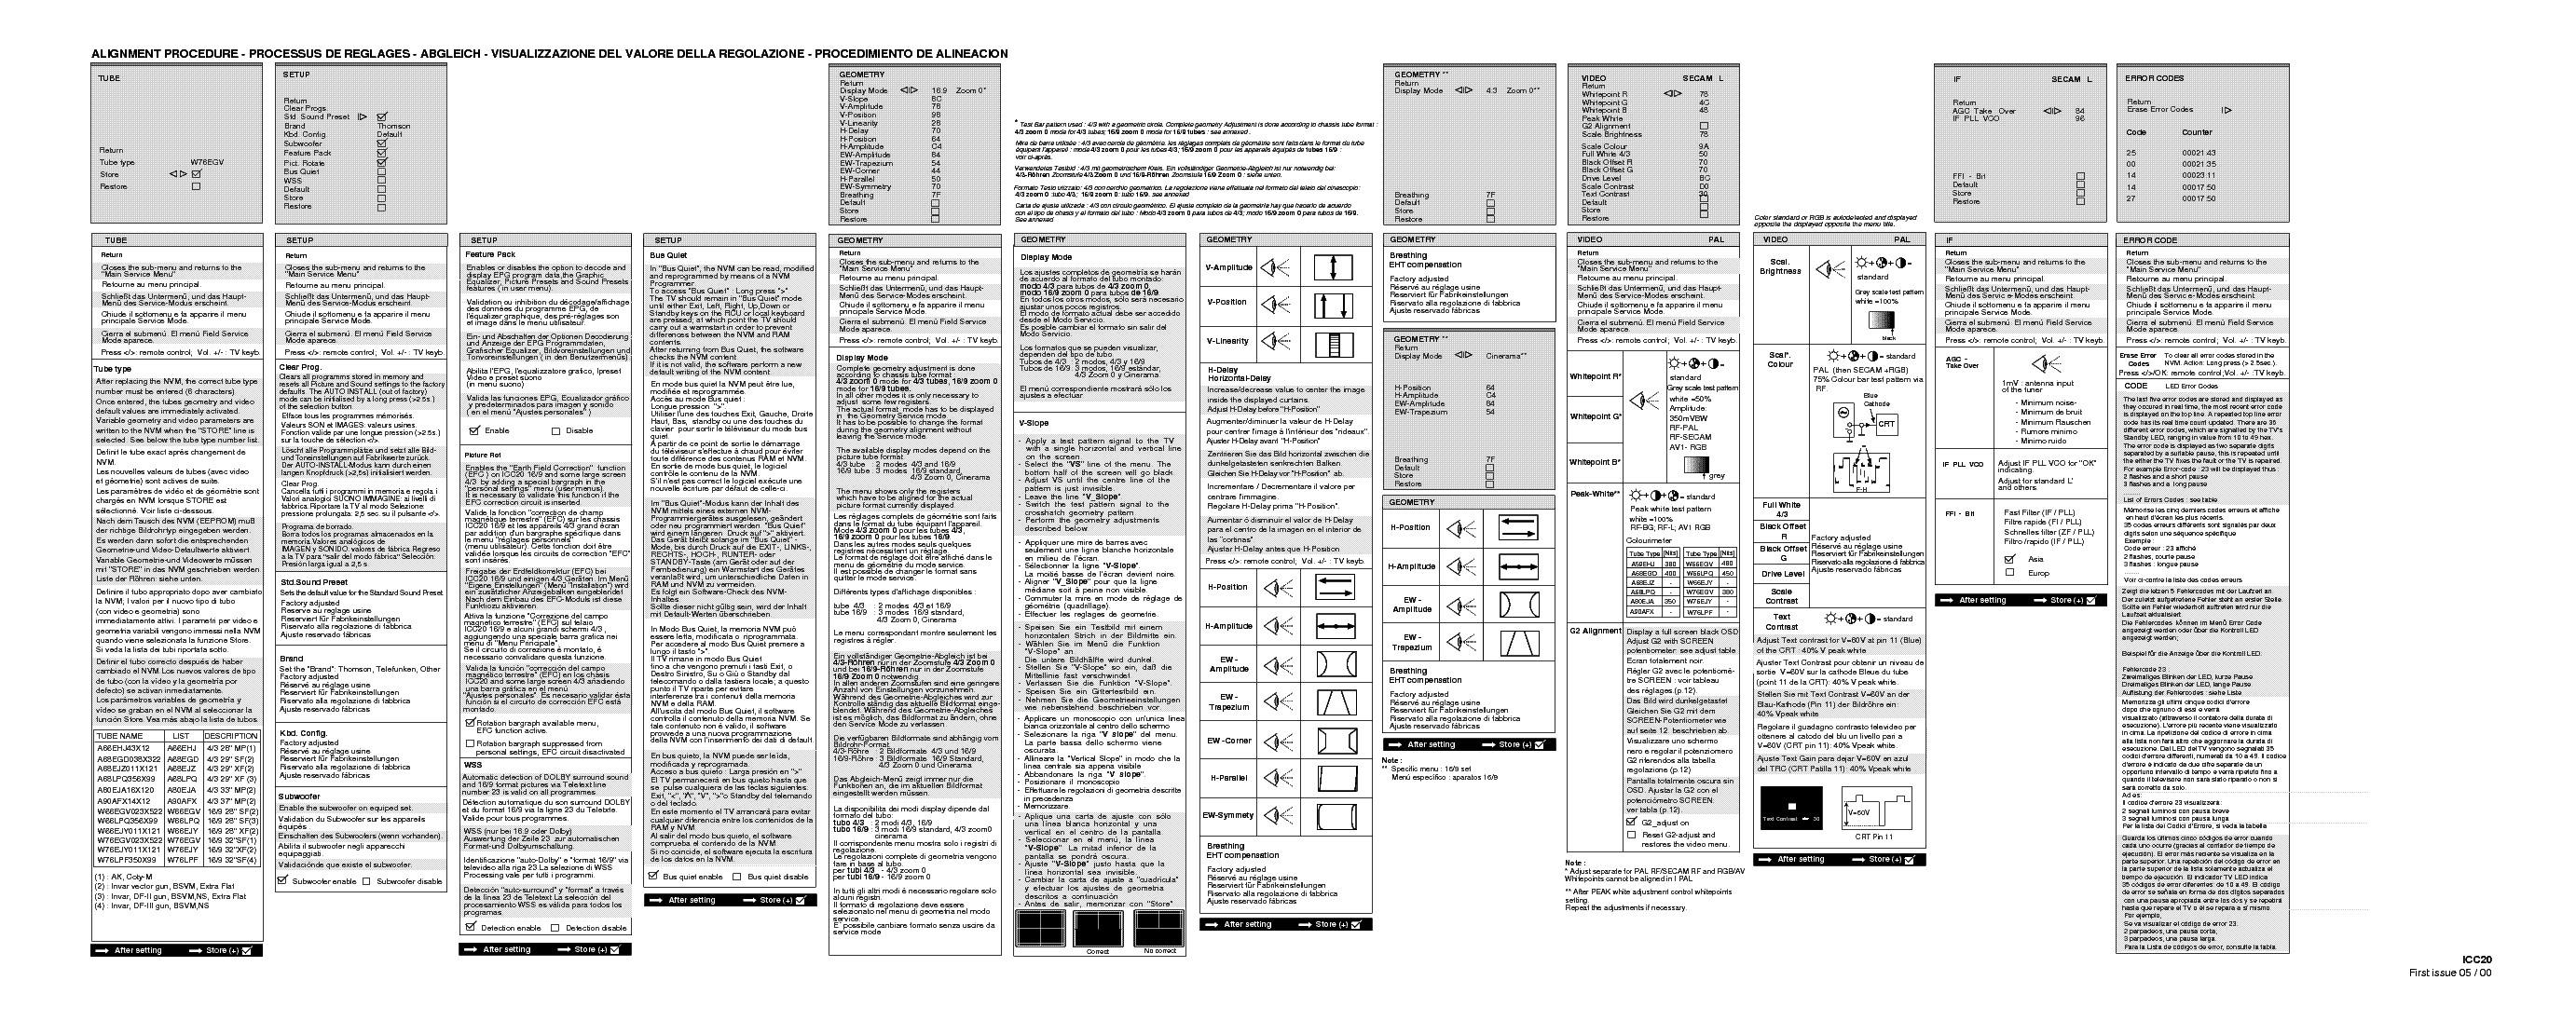 THOMSON ICC20 ALIGNMENT service manual (1st page)